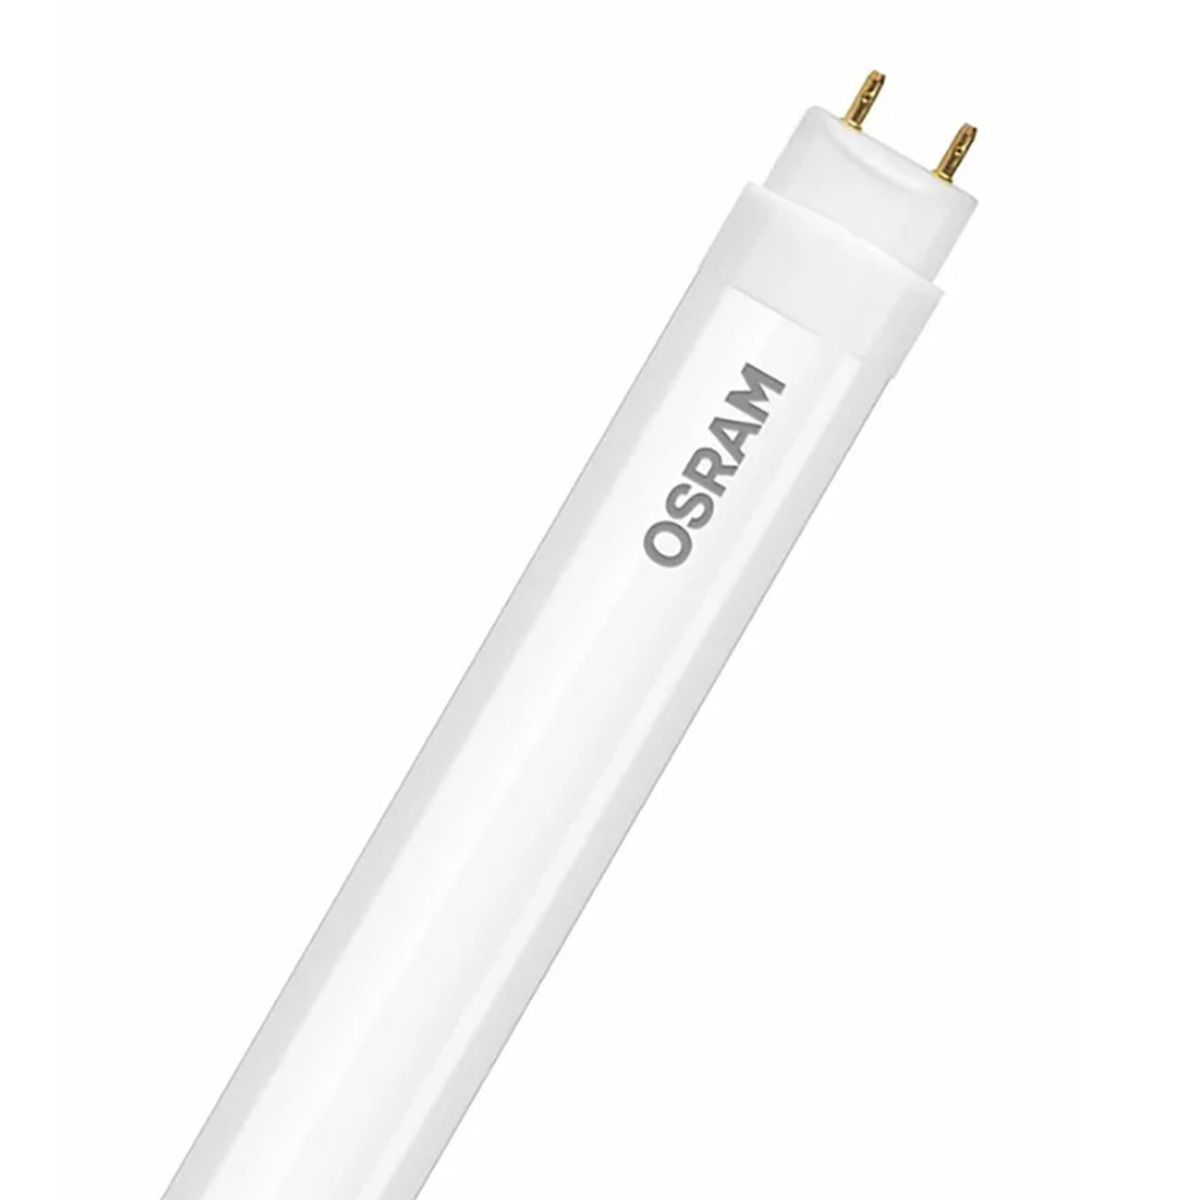 Osram SubstiTUBE Value T8 EM G13 20W 840 150CM | Blanco Frio